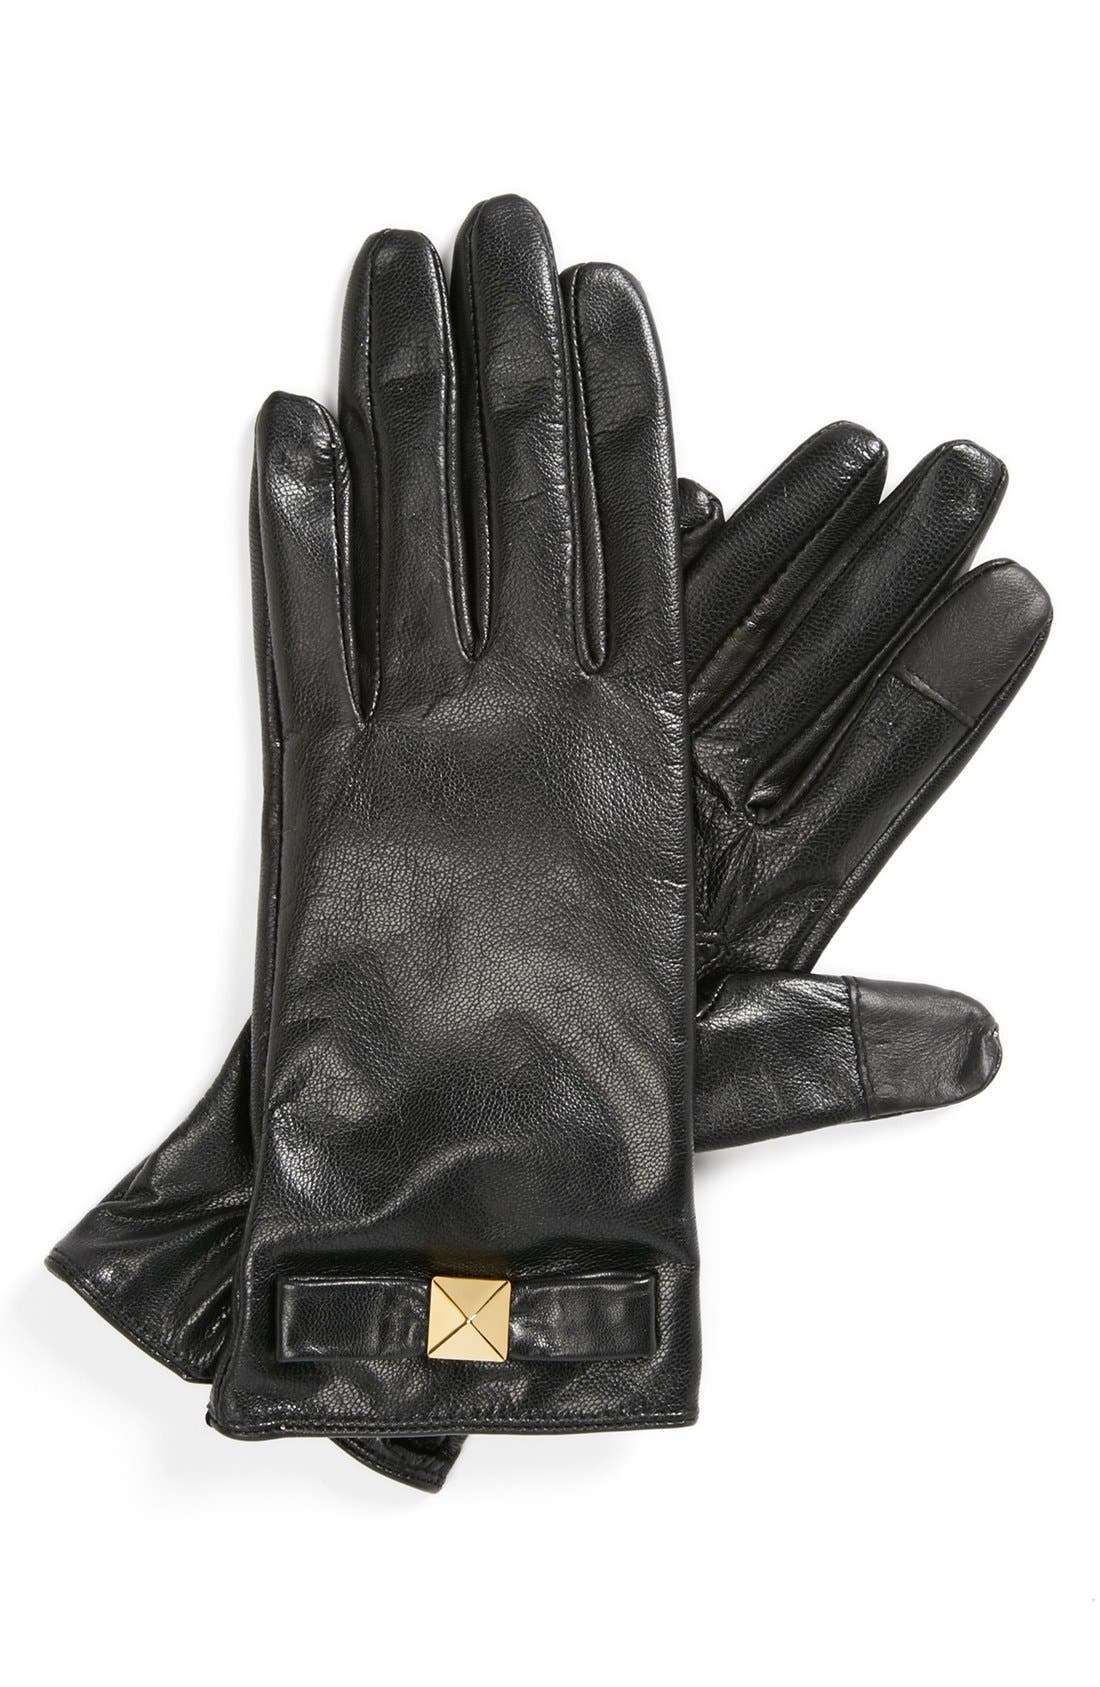 Main Image - kate spade new york 'pyramid bow' leather tech gloves